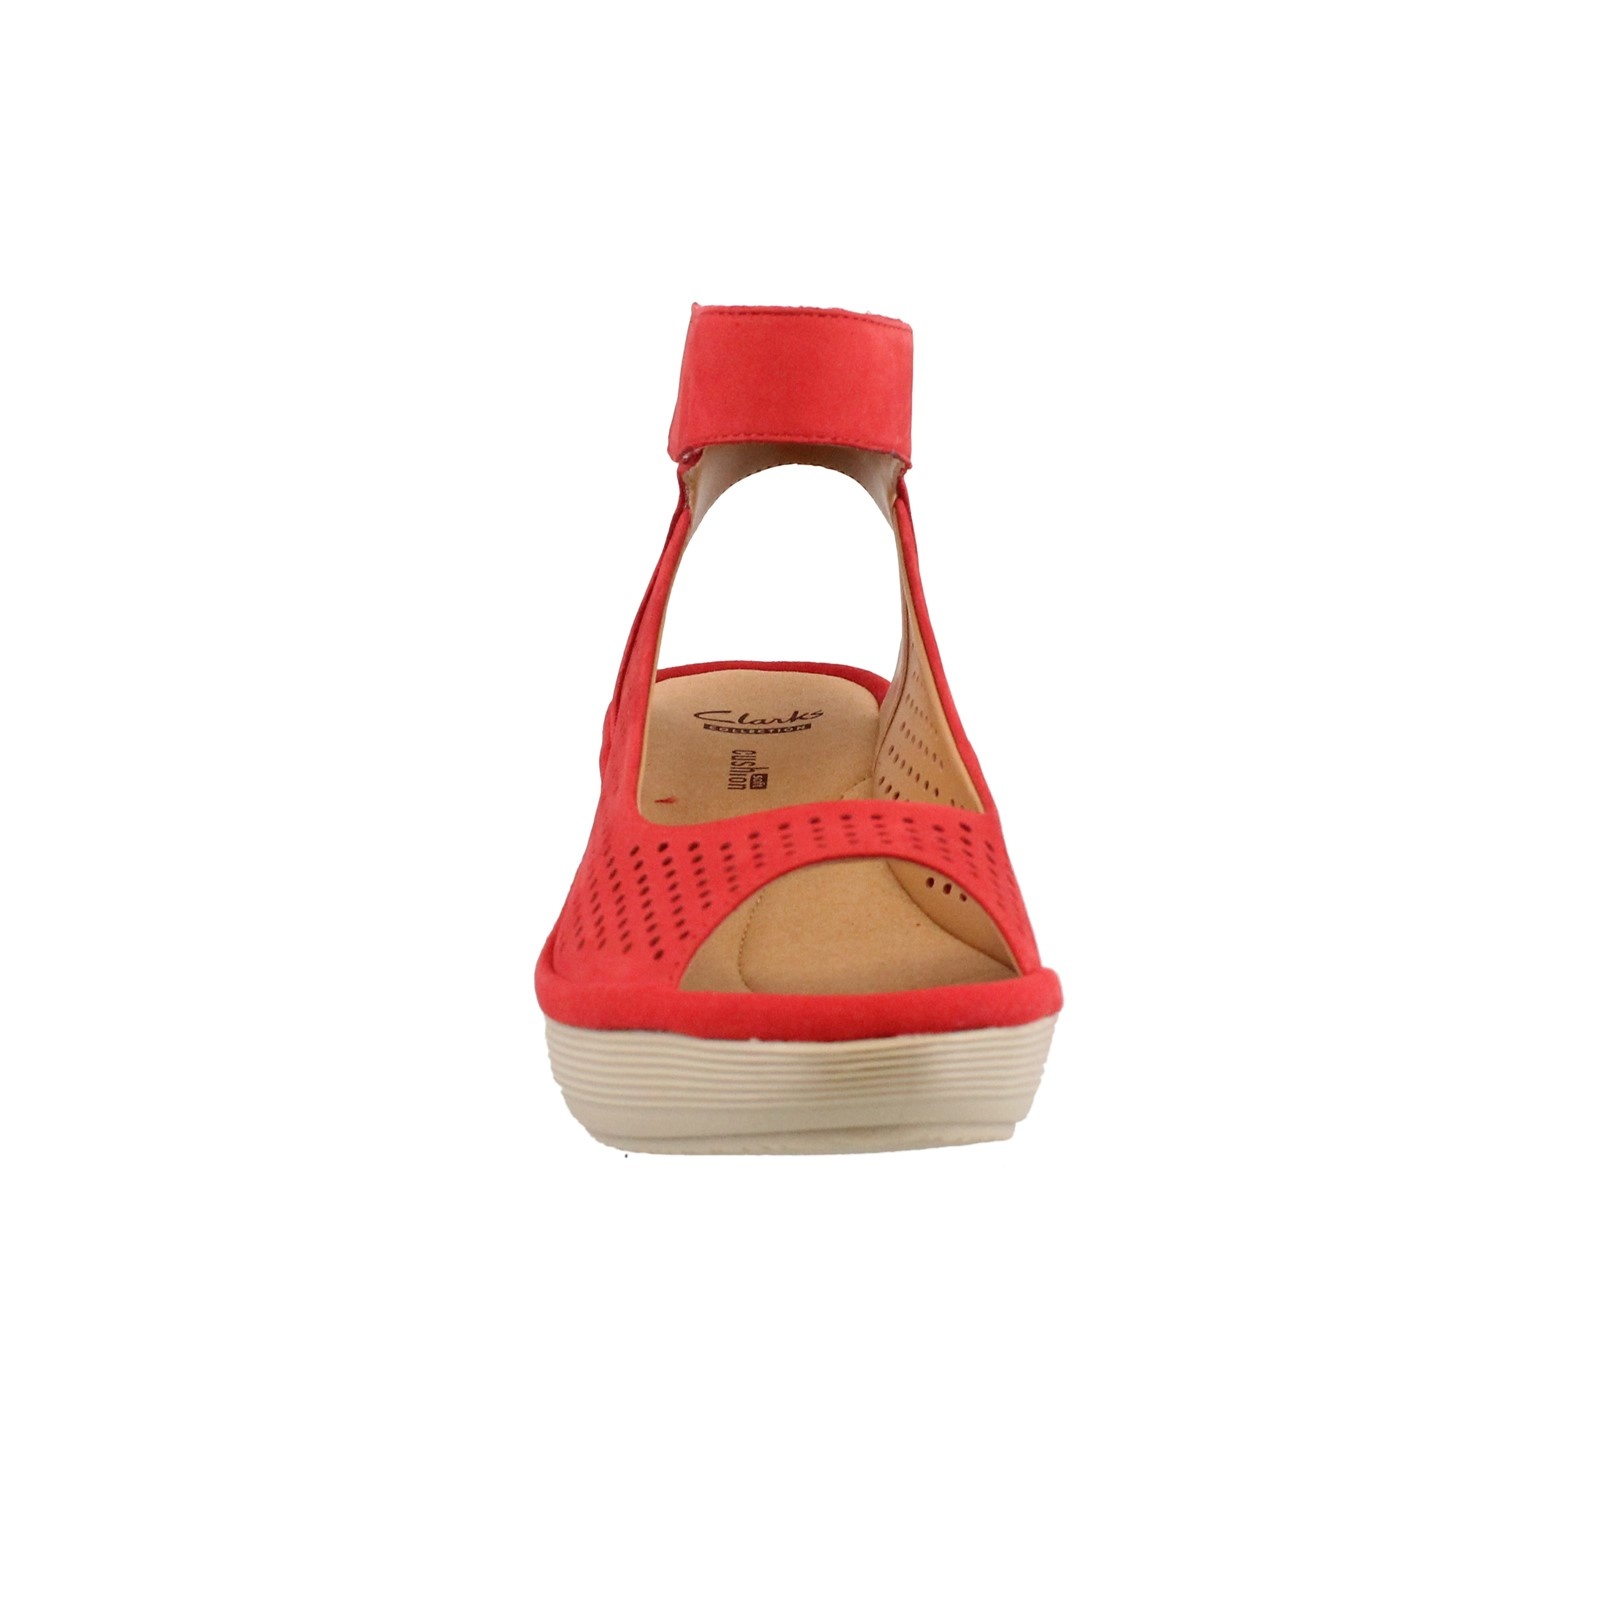 99fe7192f8f1 Next. add to favorites. Women s Clarks